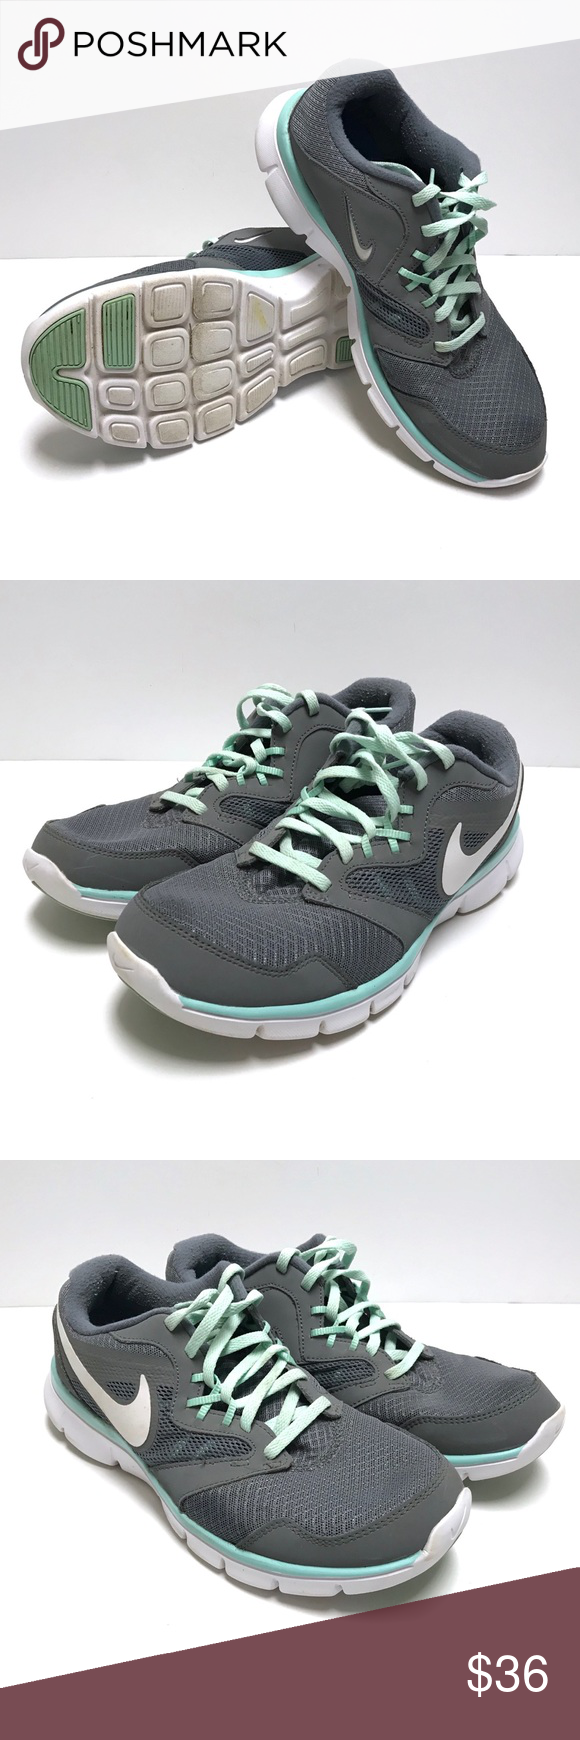 newest 55bfd 19889 Nike Flex Experience Run 3 Cool Grey Medium Mint Gray, blue and light green  color mix Perfect running shoes The shoes have been cleaned and disinfected  Nike ...